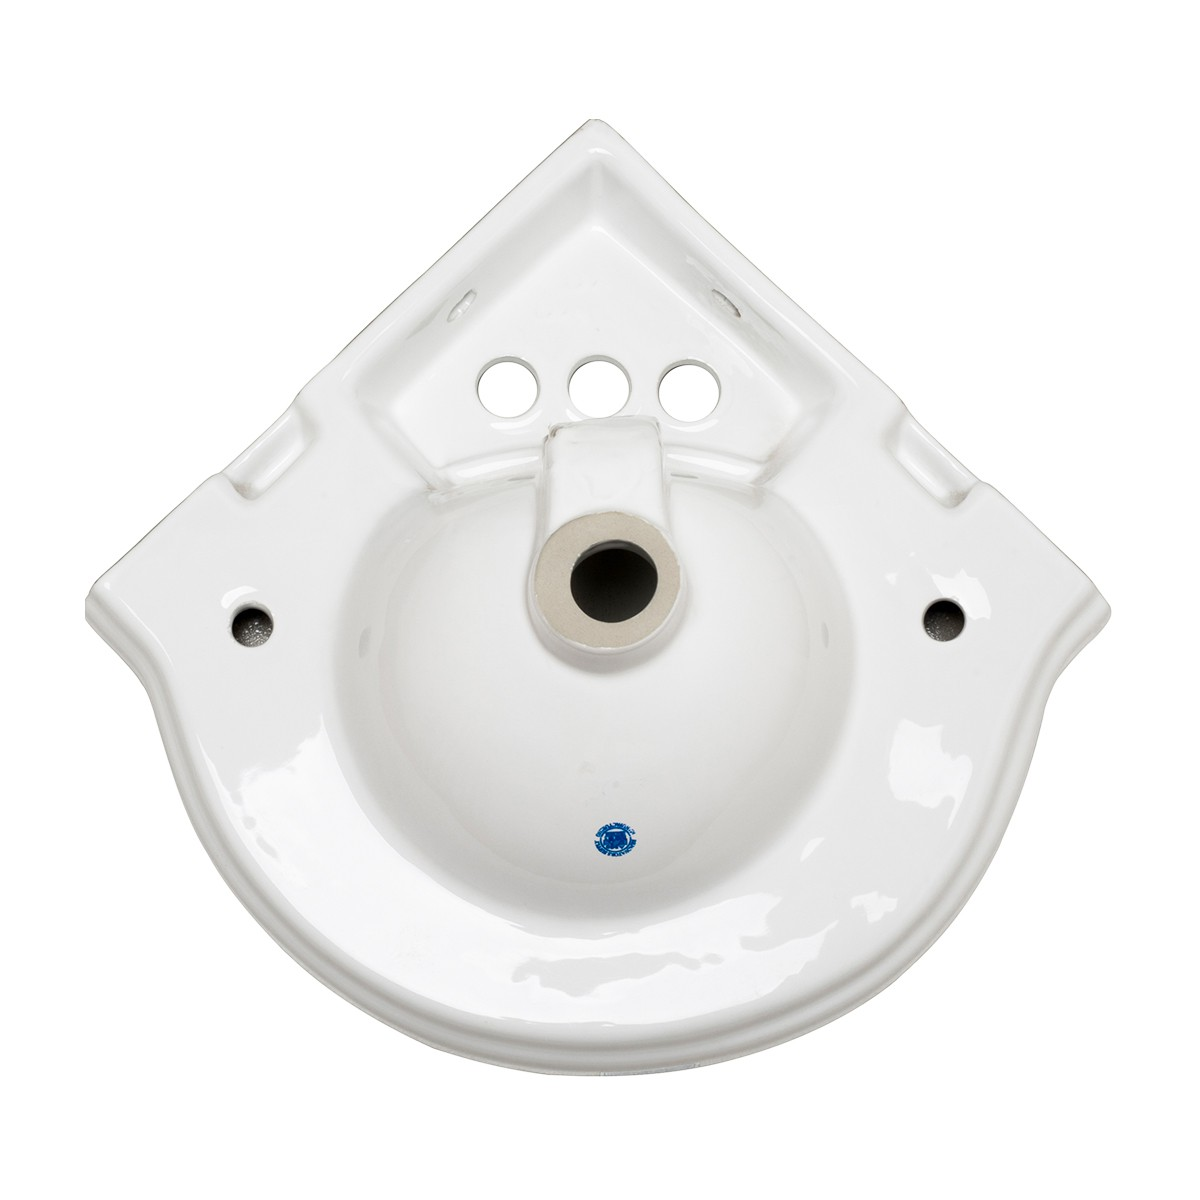 Renovators Supply Corner Bathroom Wall Mount Sink White With 4 Centerset Space Saving Small Tiny Petite Antique Colonial Traditional Modern White Corner Wall Mount Hung Hanging Bathroom